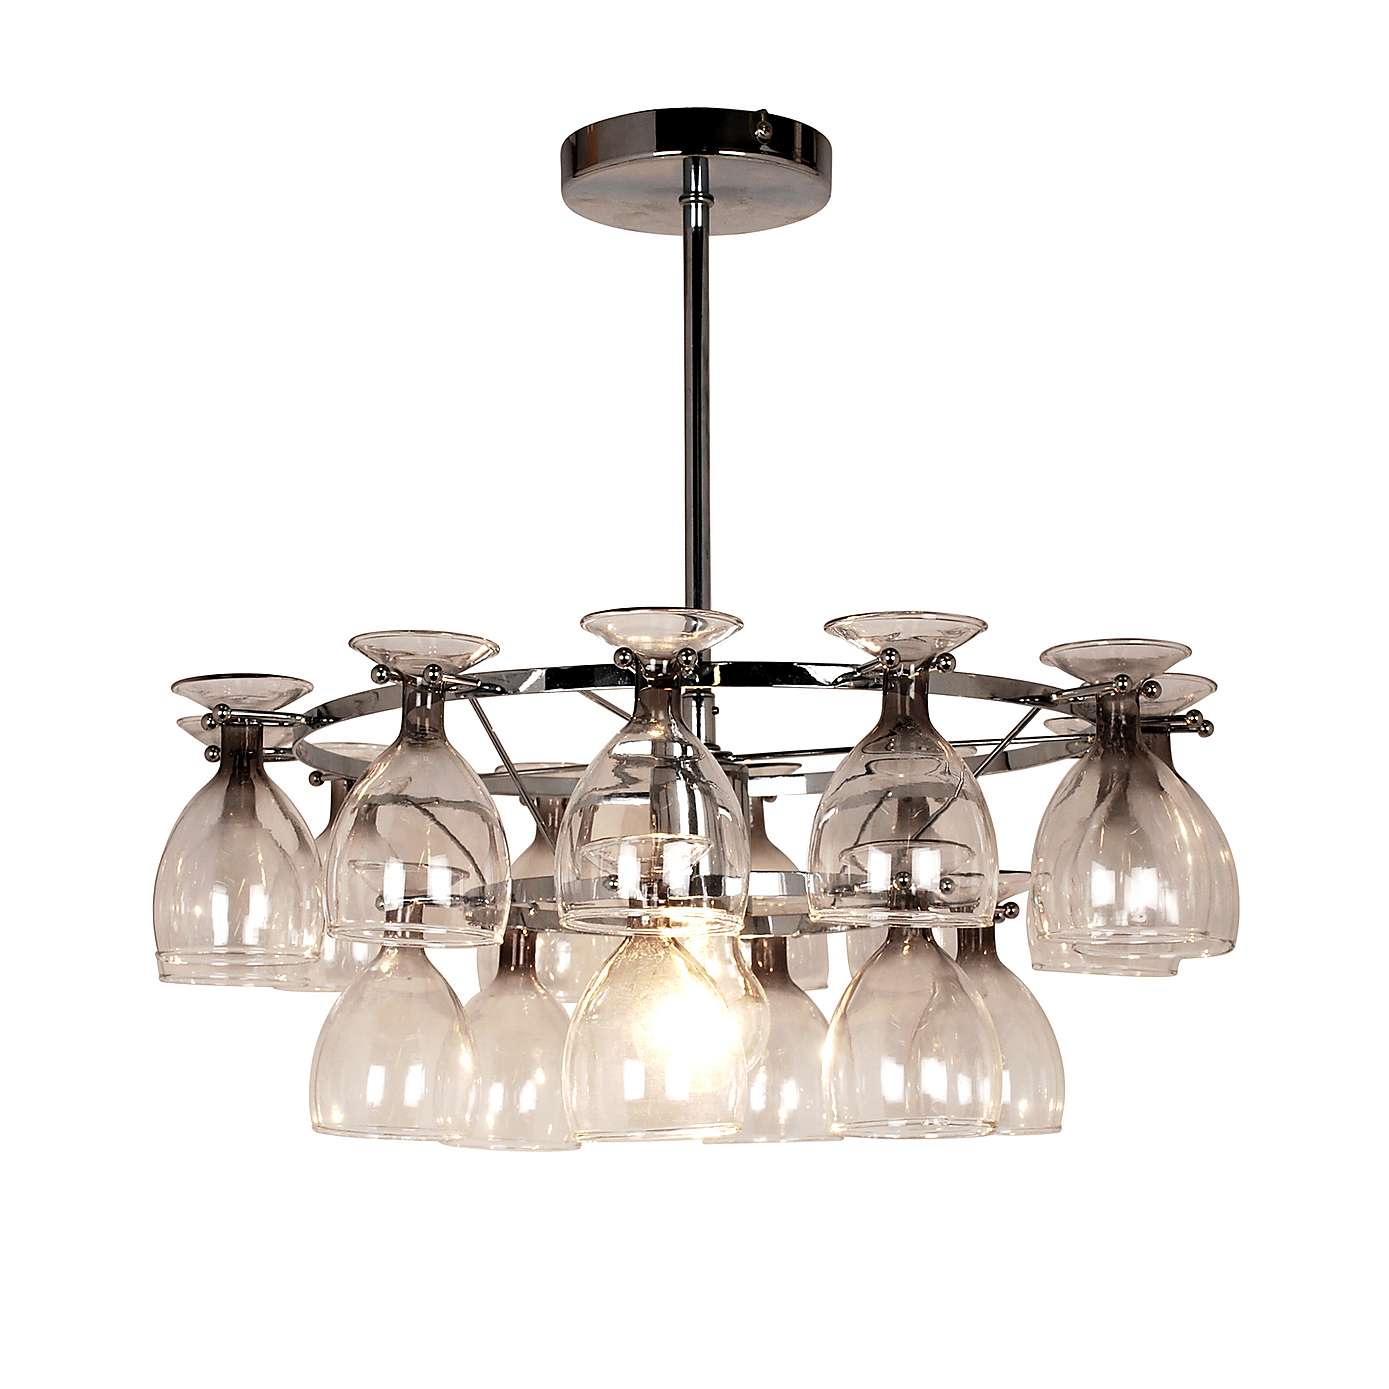 of lighting chandelier luxury on gathered images wrought creating tables realised and vine crafted chandeliers beautifully iron comprising leaves feature pinterest dining large tied hand a best jifurniture remarkable